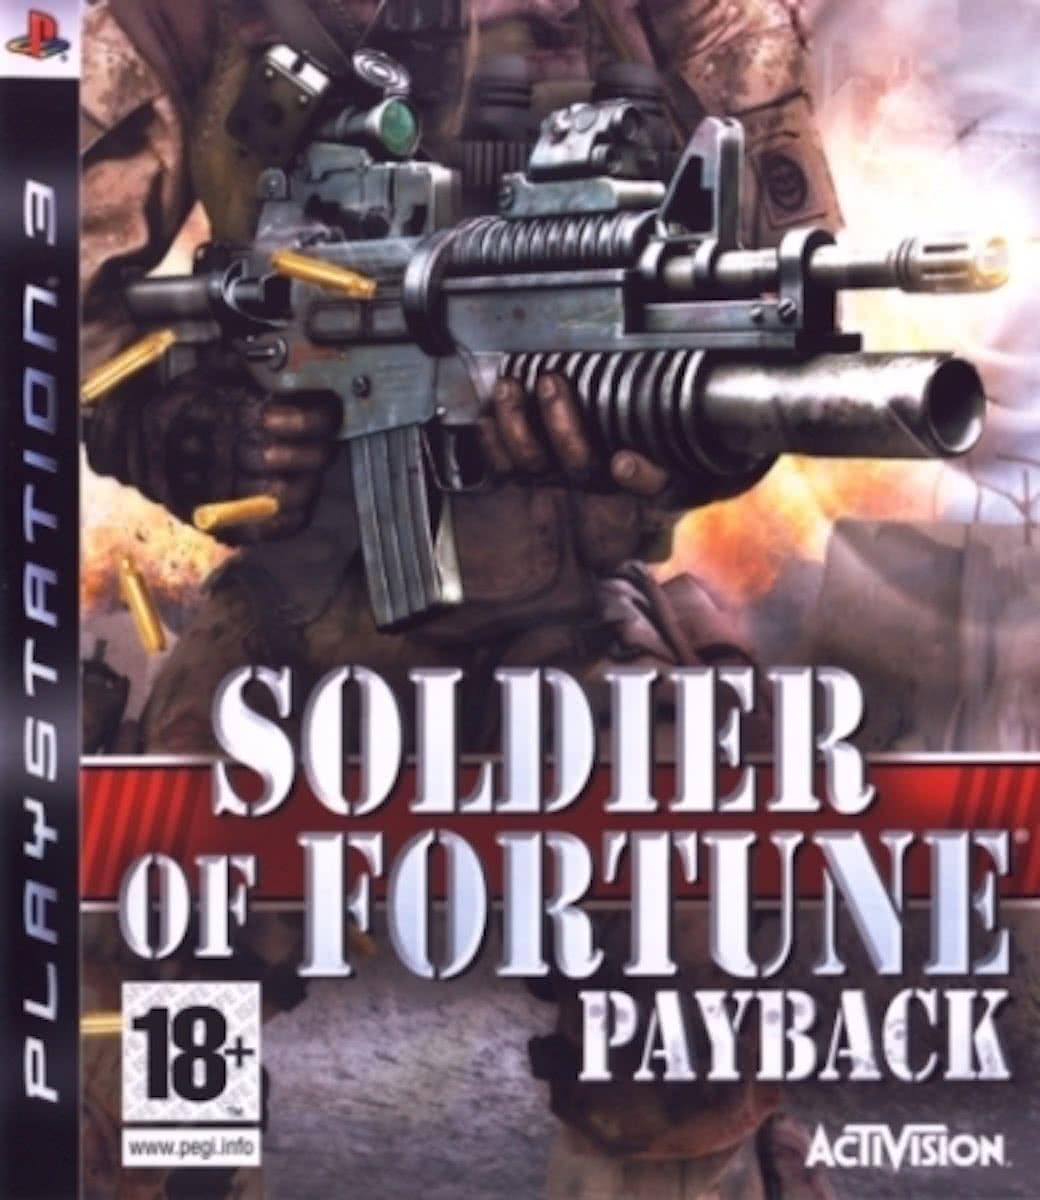 Soldier of Fortune - Payback